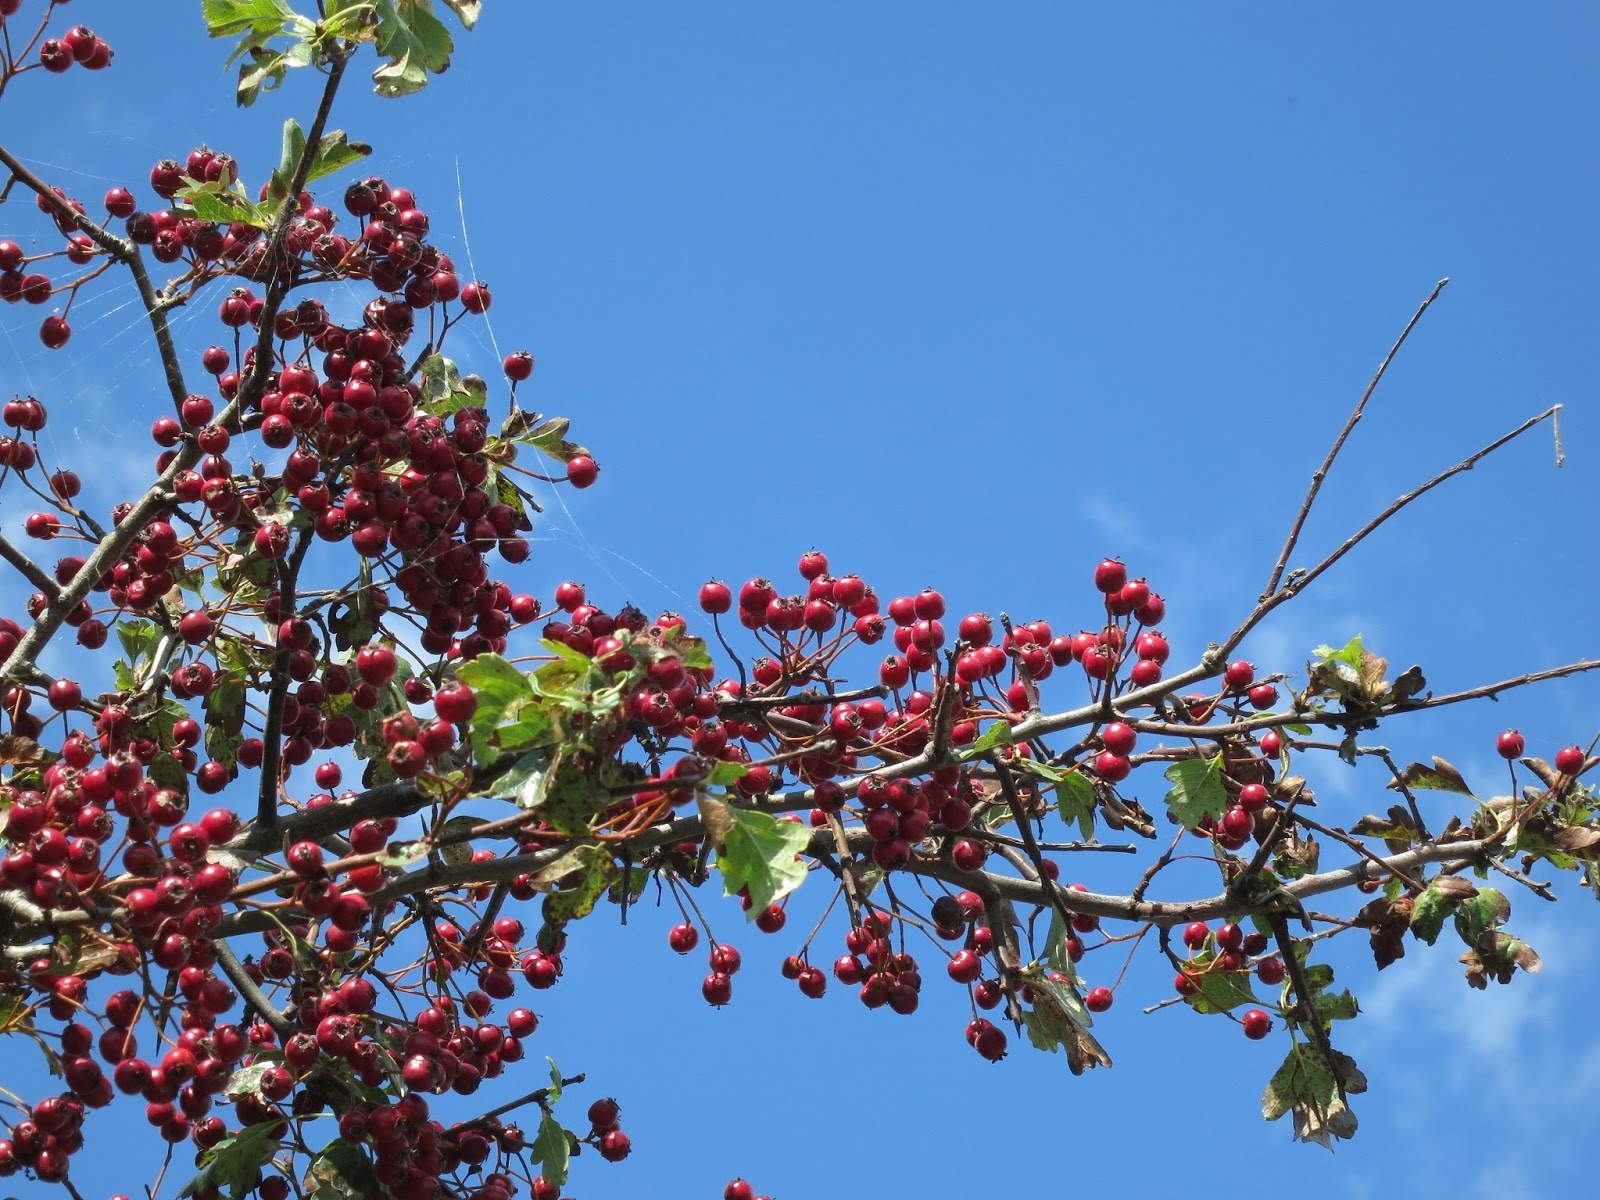 Branch of a hawthorn tree laden with bright red haws against a blue sky